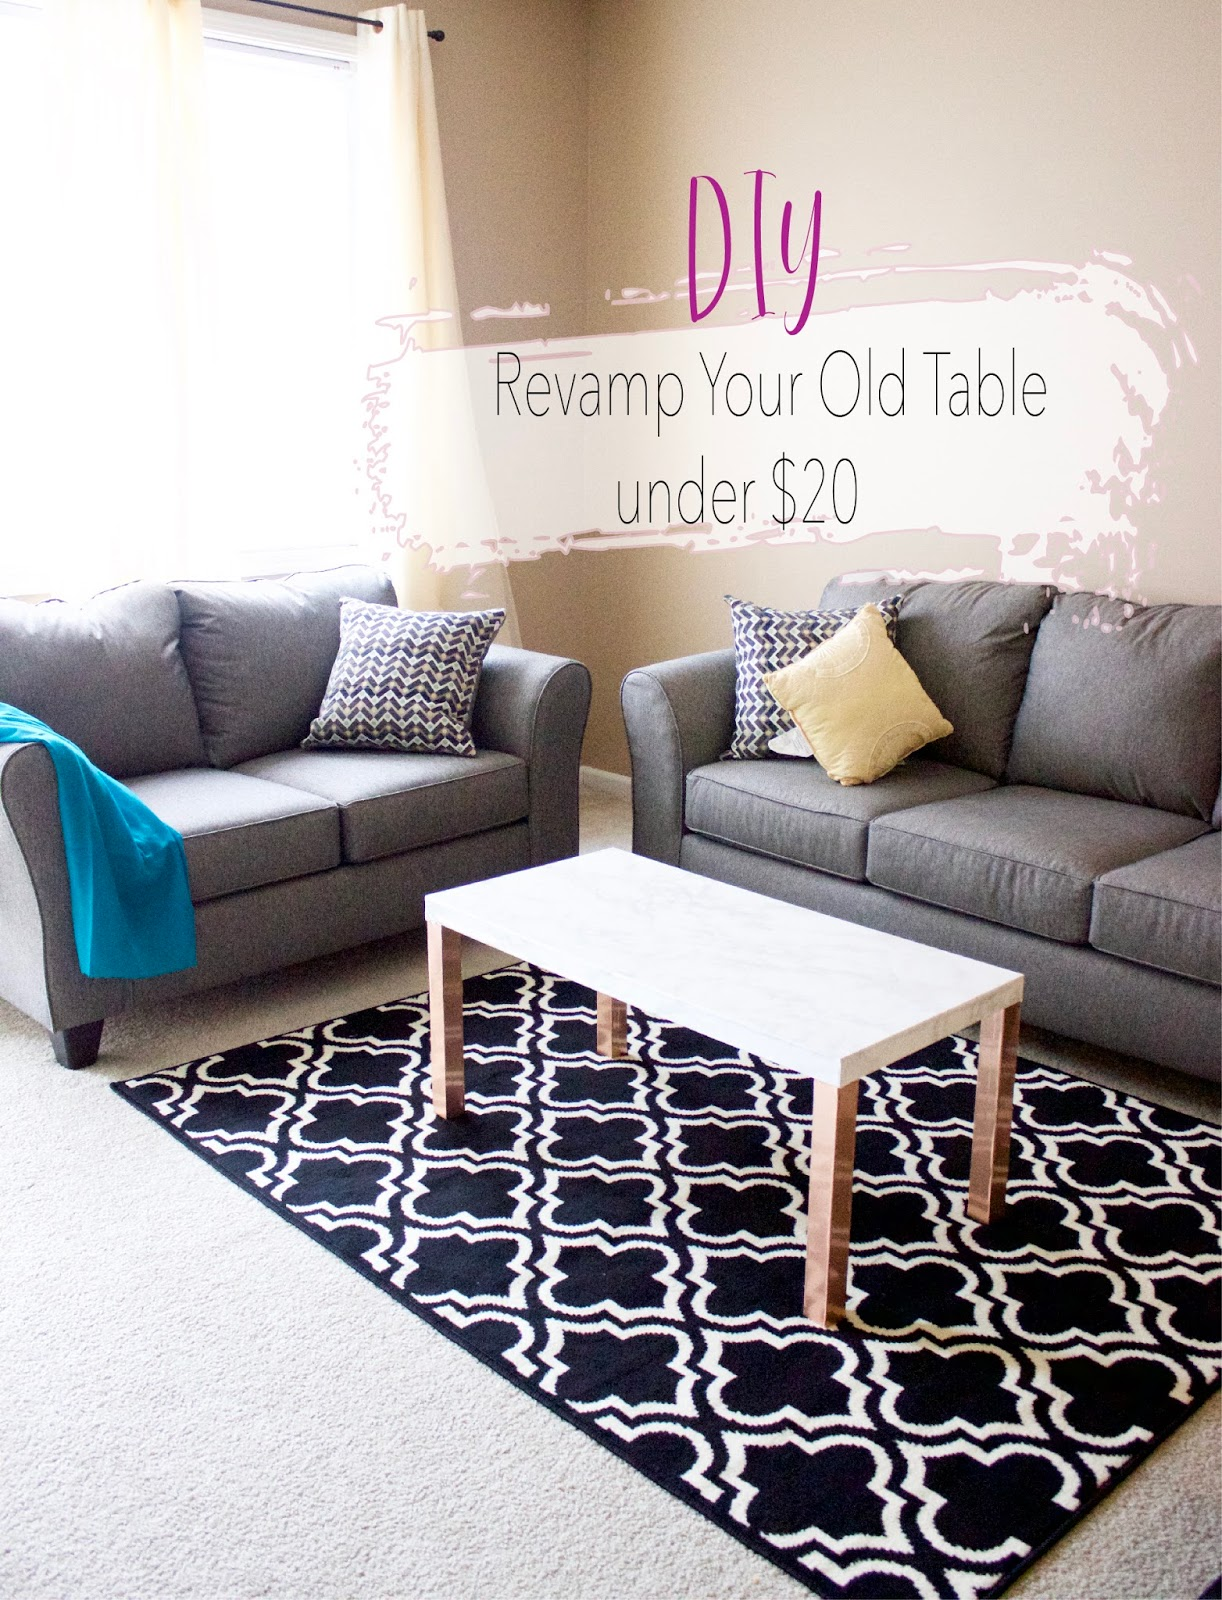 Revamp An Old Table Under $20